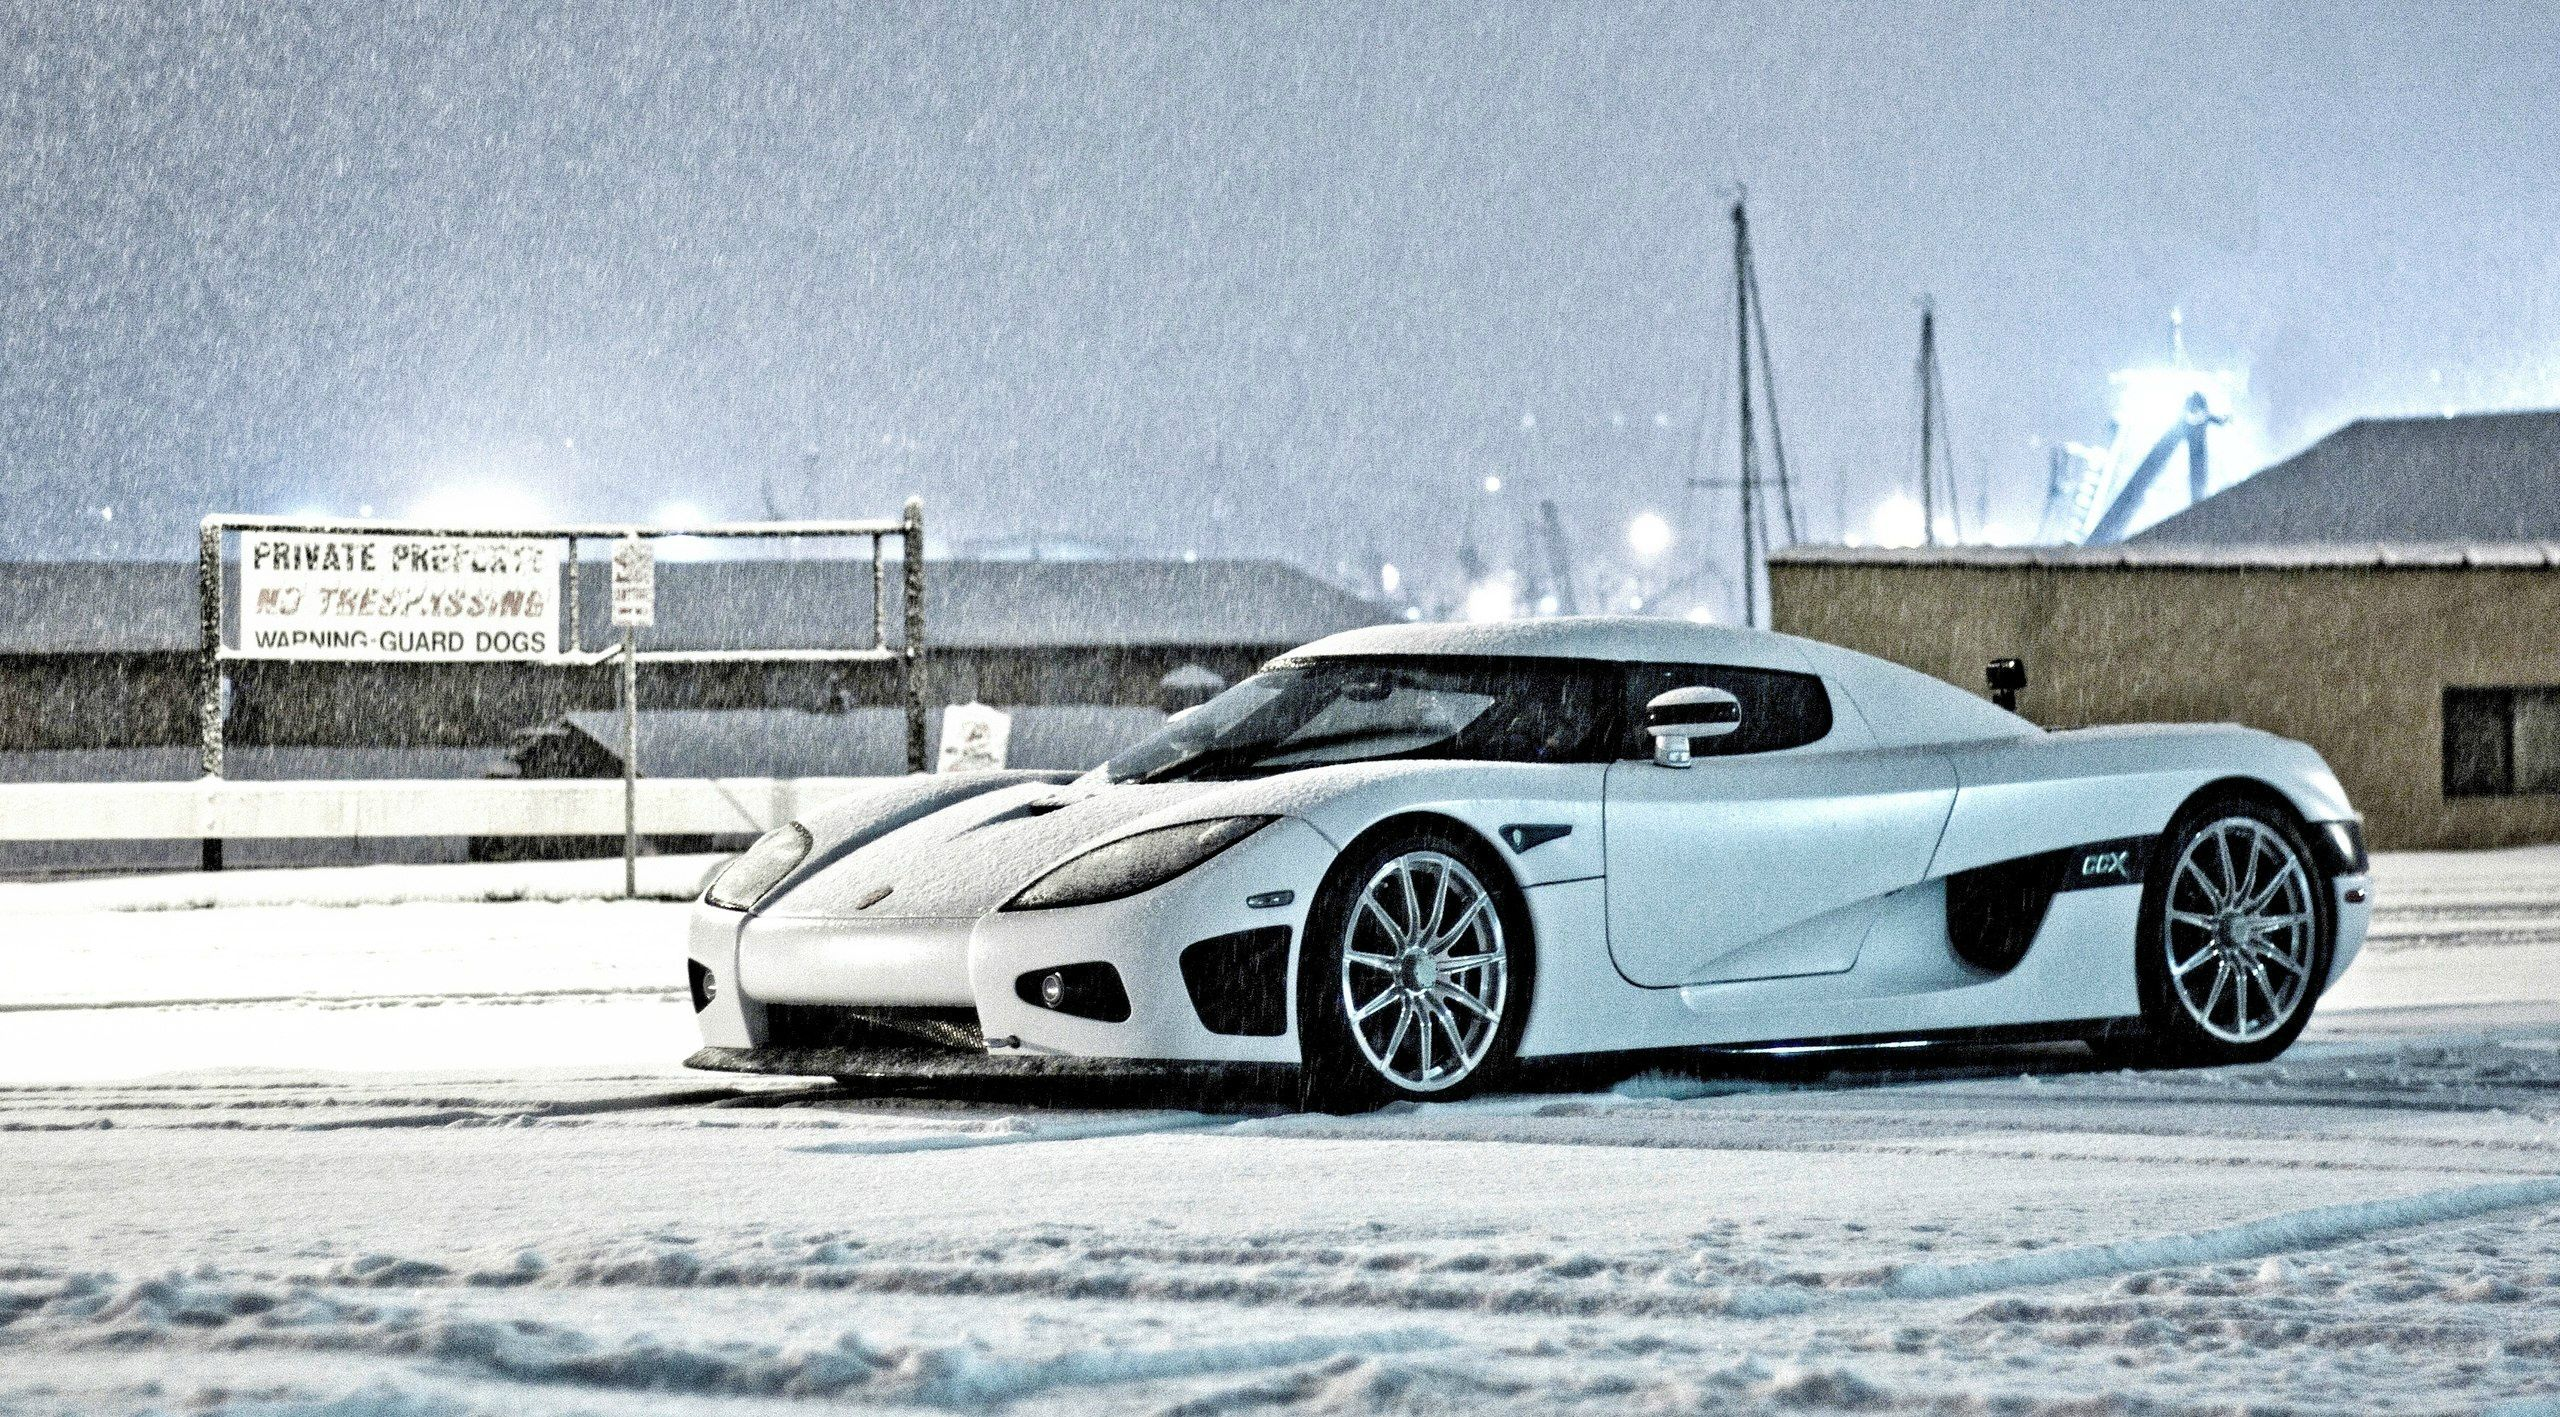 koenigsegg ccx wallpaper background, wallpapers